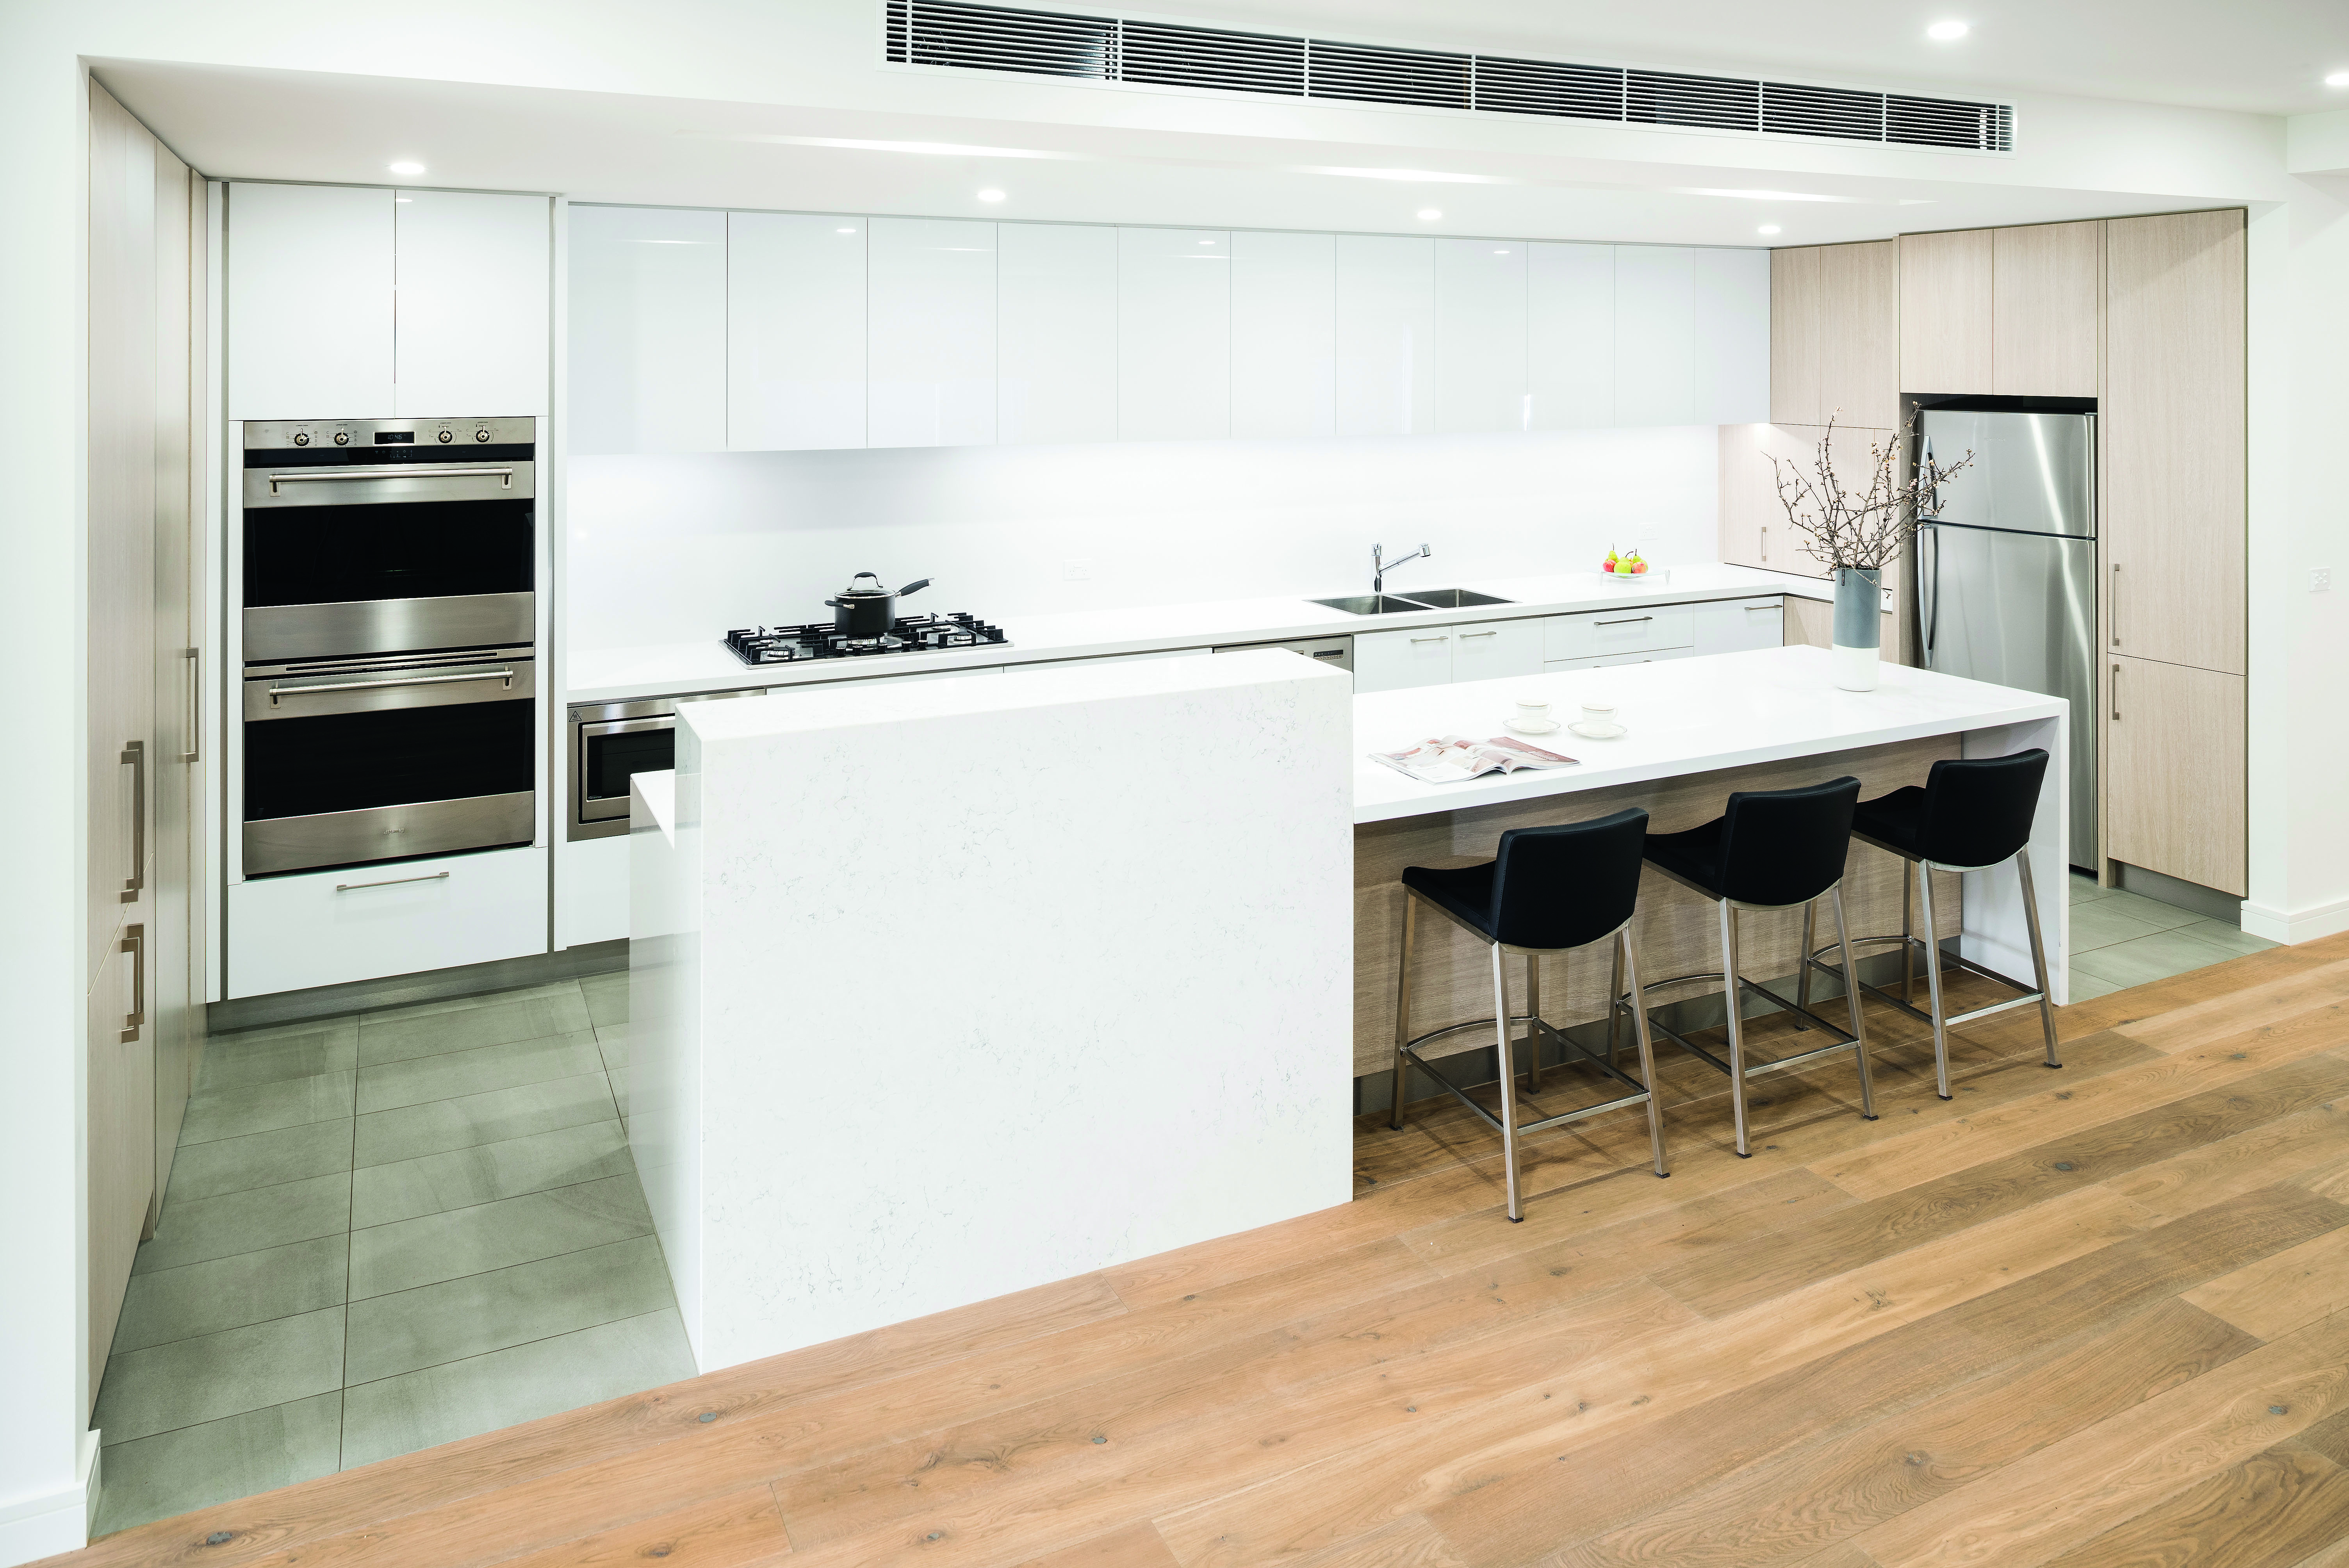 Contemporary class: a neutral masterpiece - kitchen overview No Fuss Kitchens